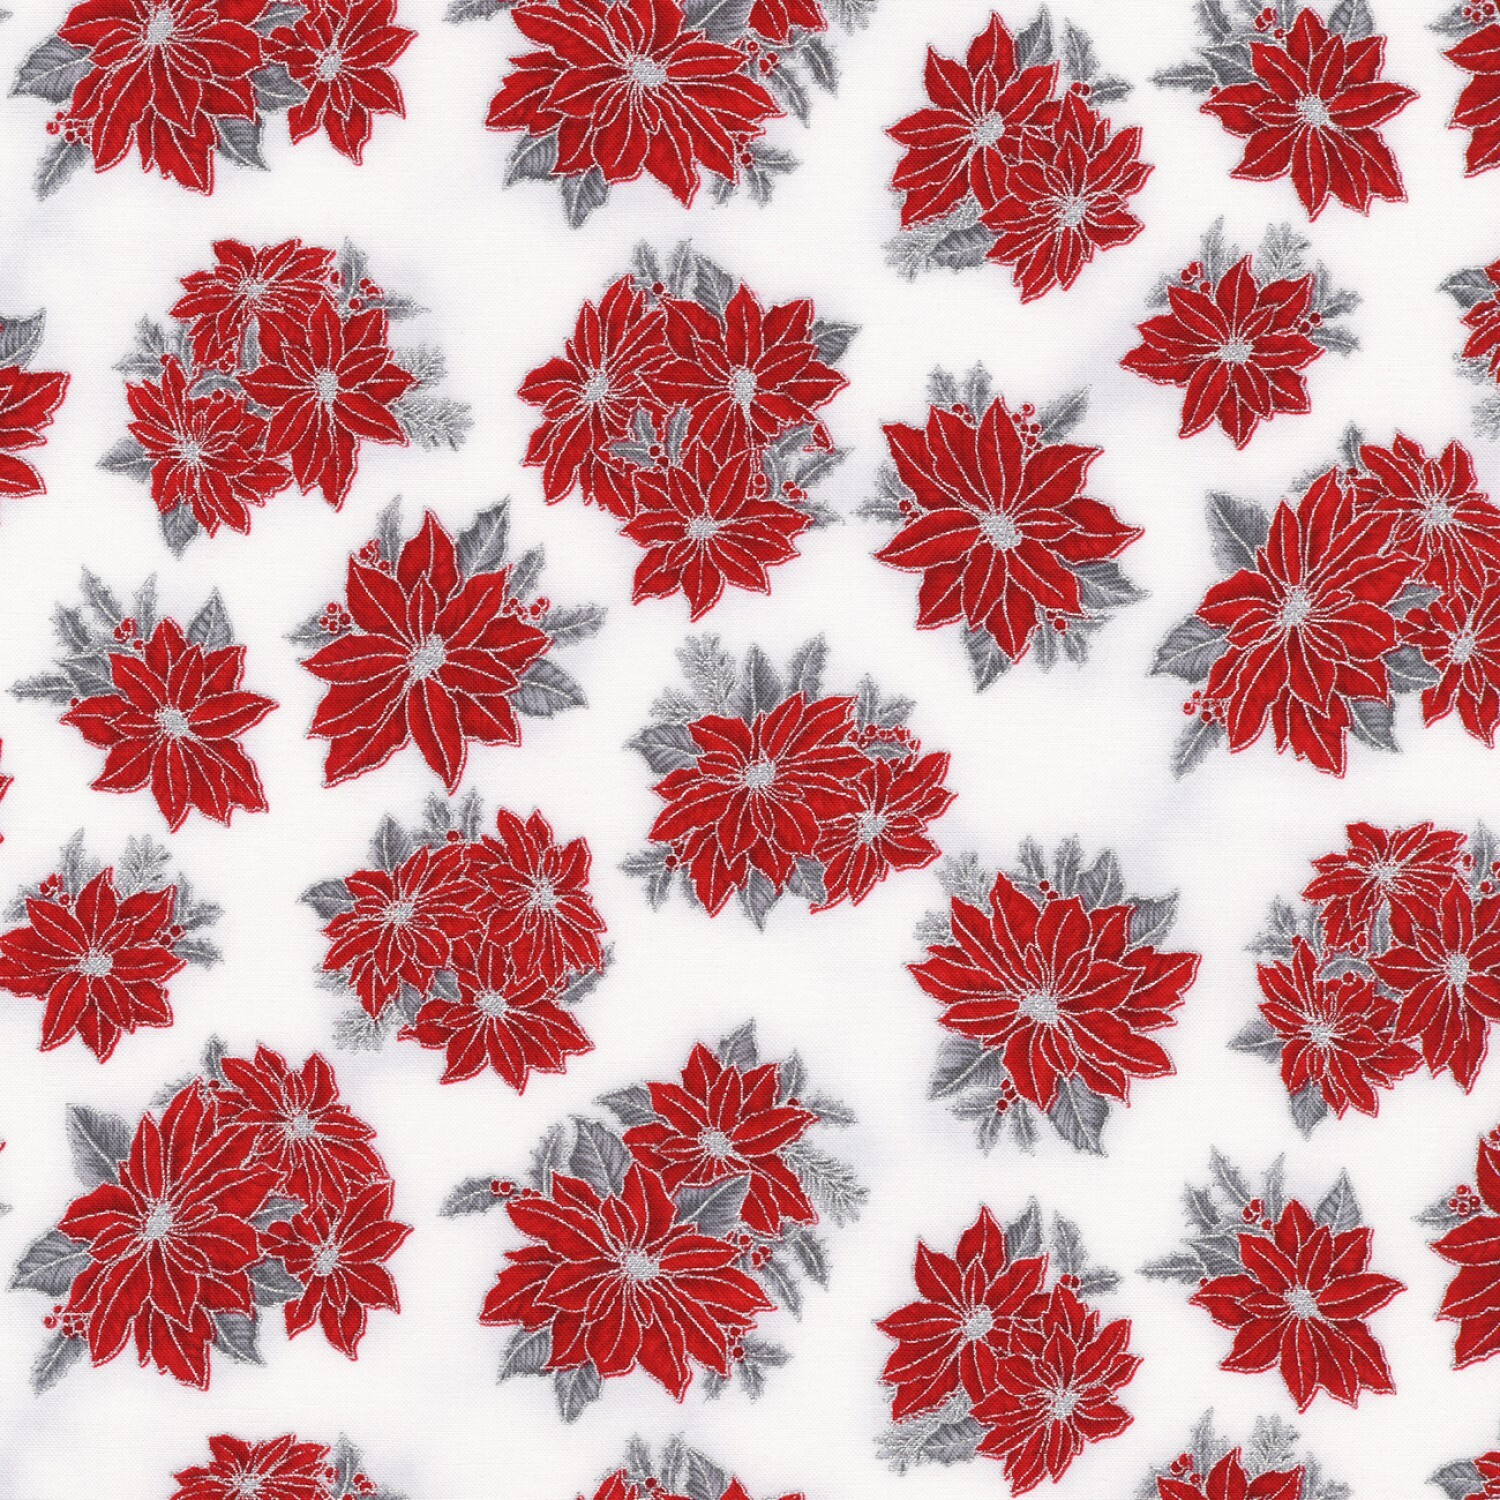 Holiday Charms - Poinsettias on White - 1/2m cut 58115